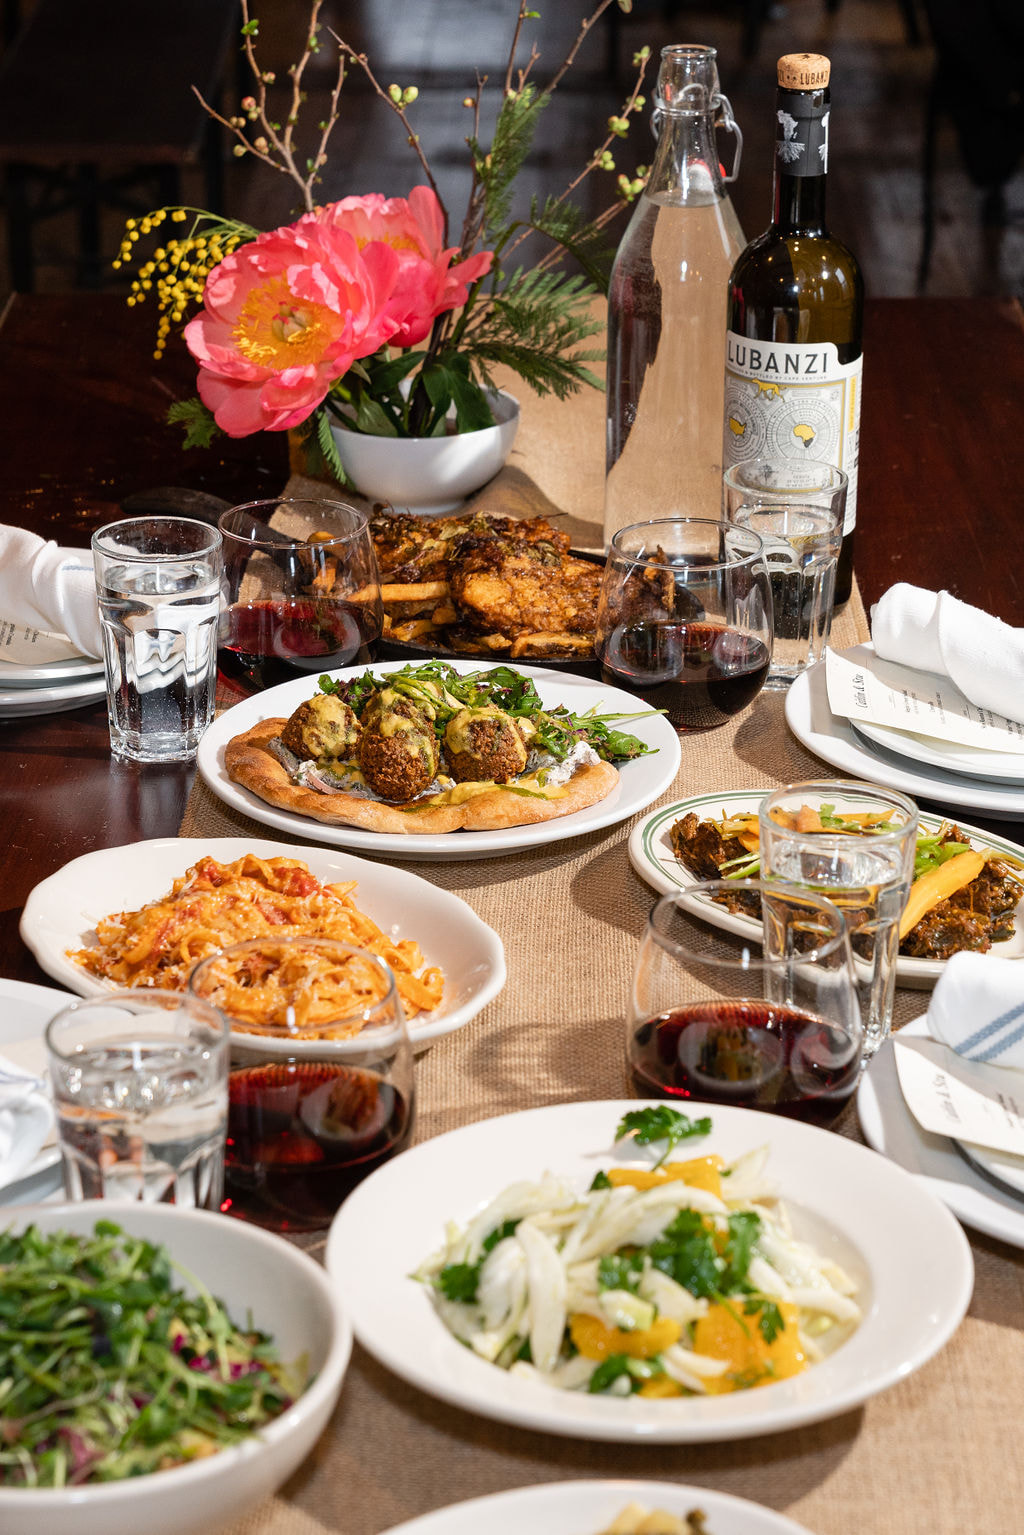 FRI (5/29), SAT (5/30), SUN (5/31) | Mediterranean Spiced Lamb and Chicken Schwarma Family Dinner